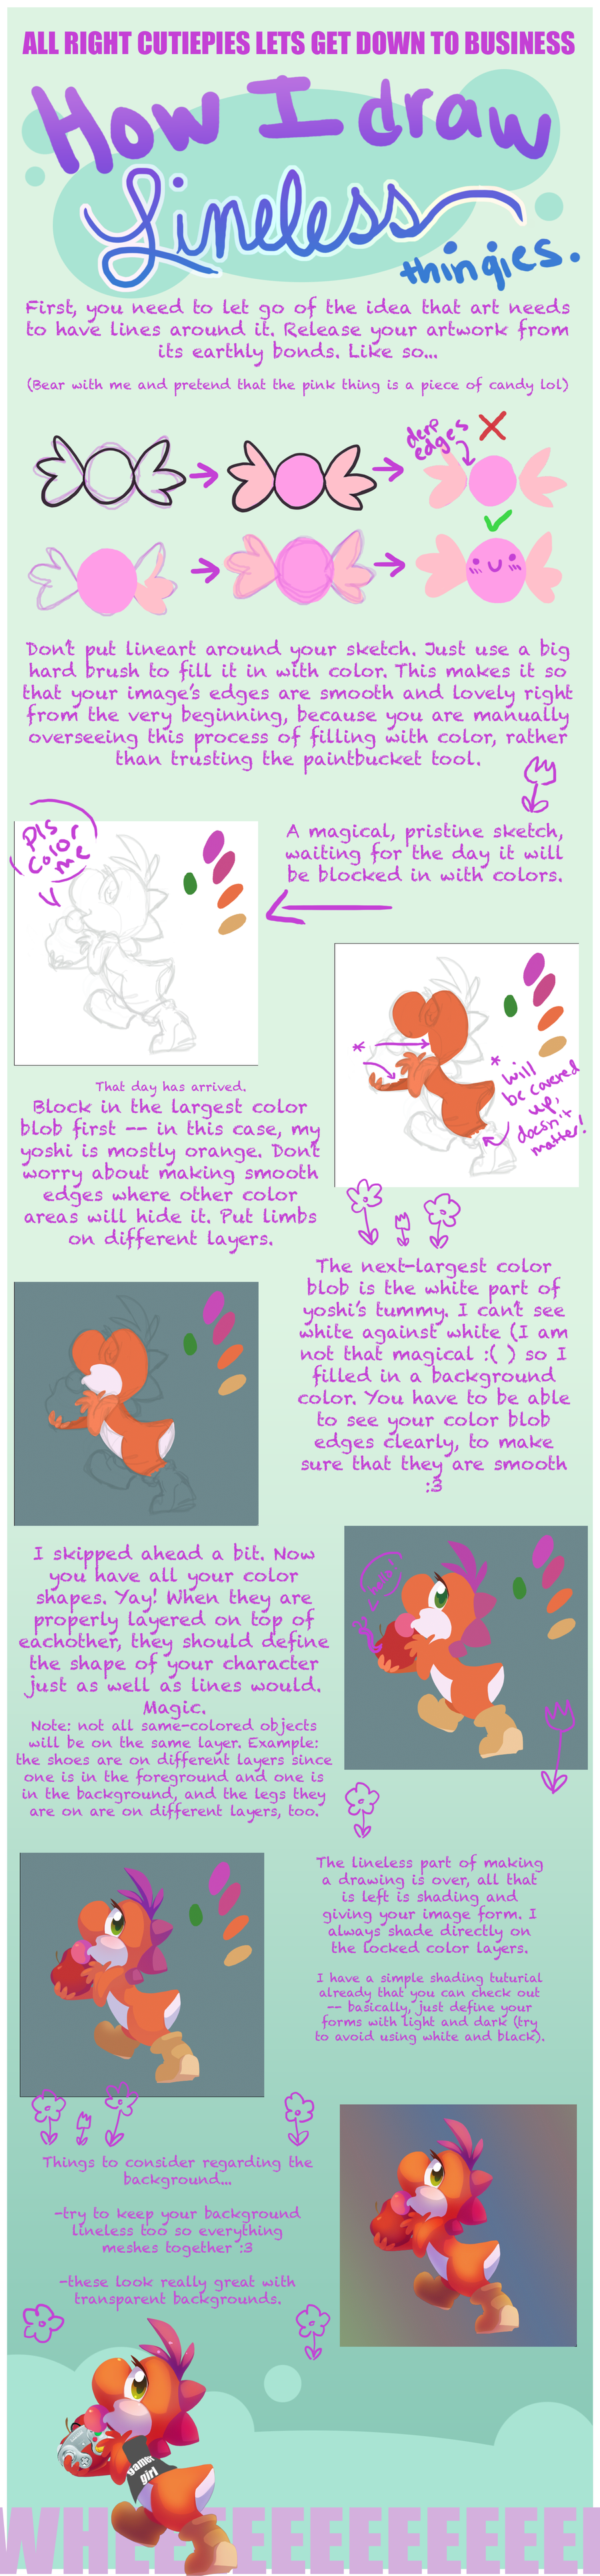 How to color your art in photoshop -  Tutorial How I Draw Lineless By Celebi Yoshi